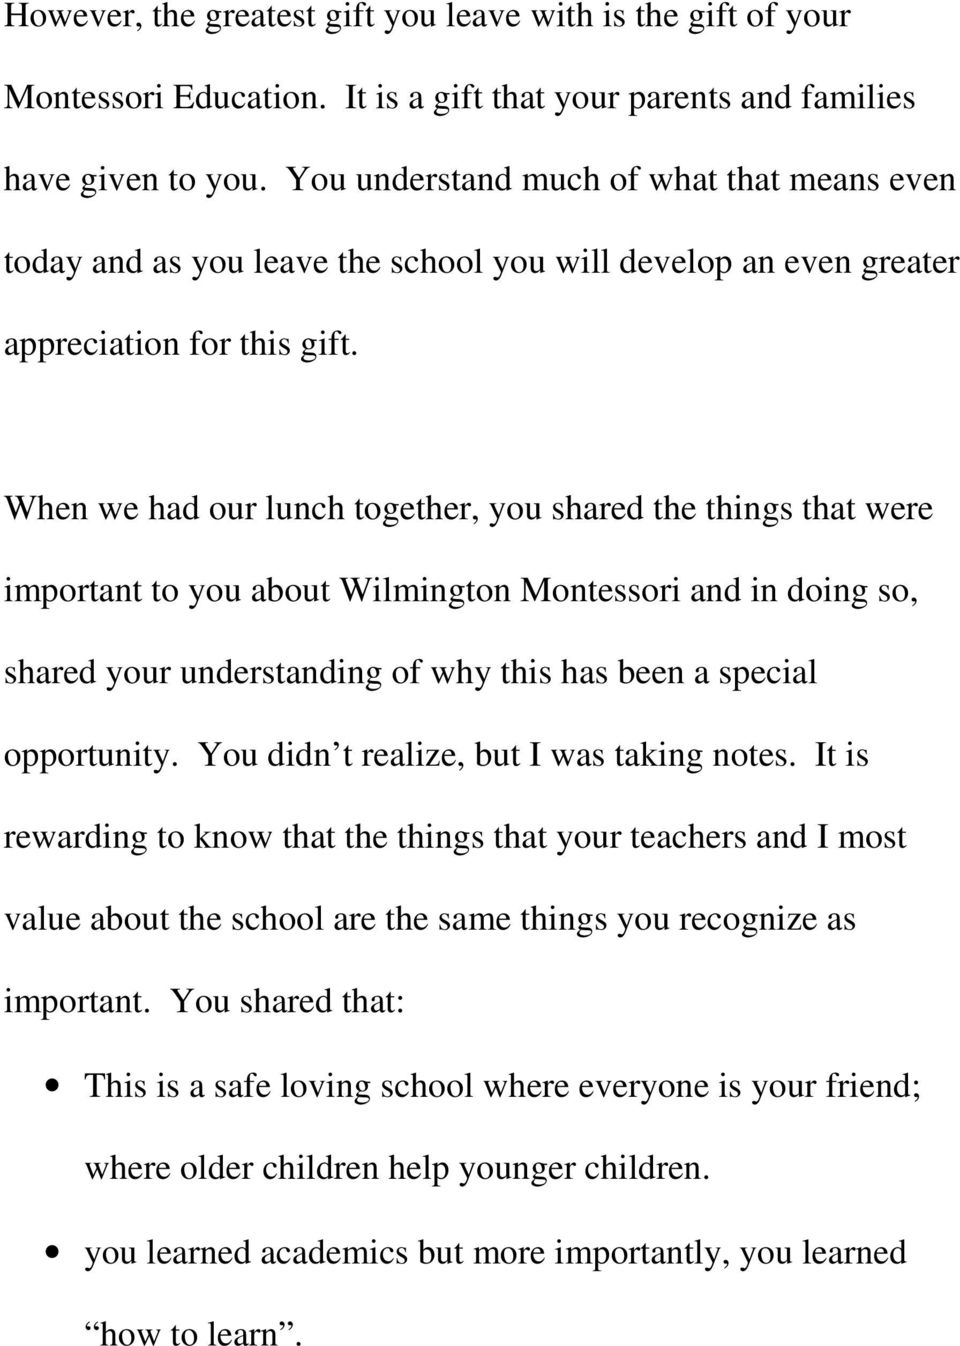 When we had our lunch together, you shared the things that were important to you about Wilmington Montessori and in doing so, shared your understanding of why this has been a special opportunity.